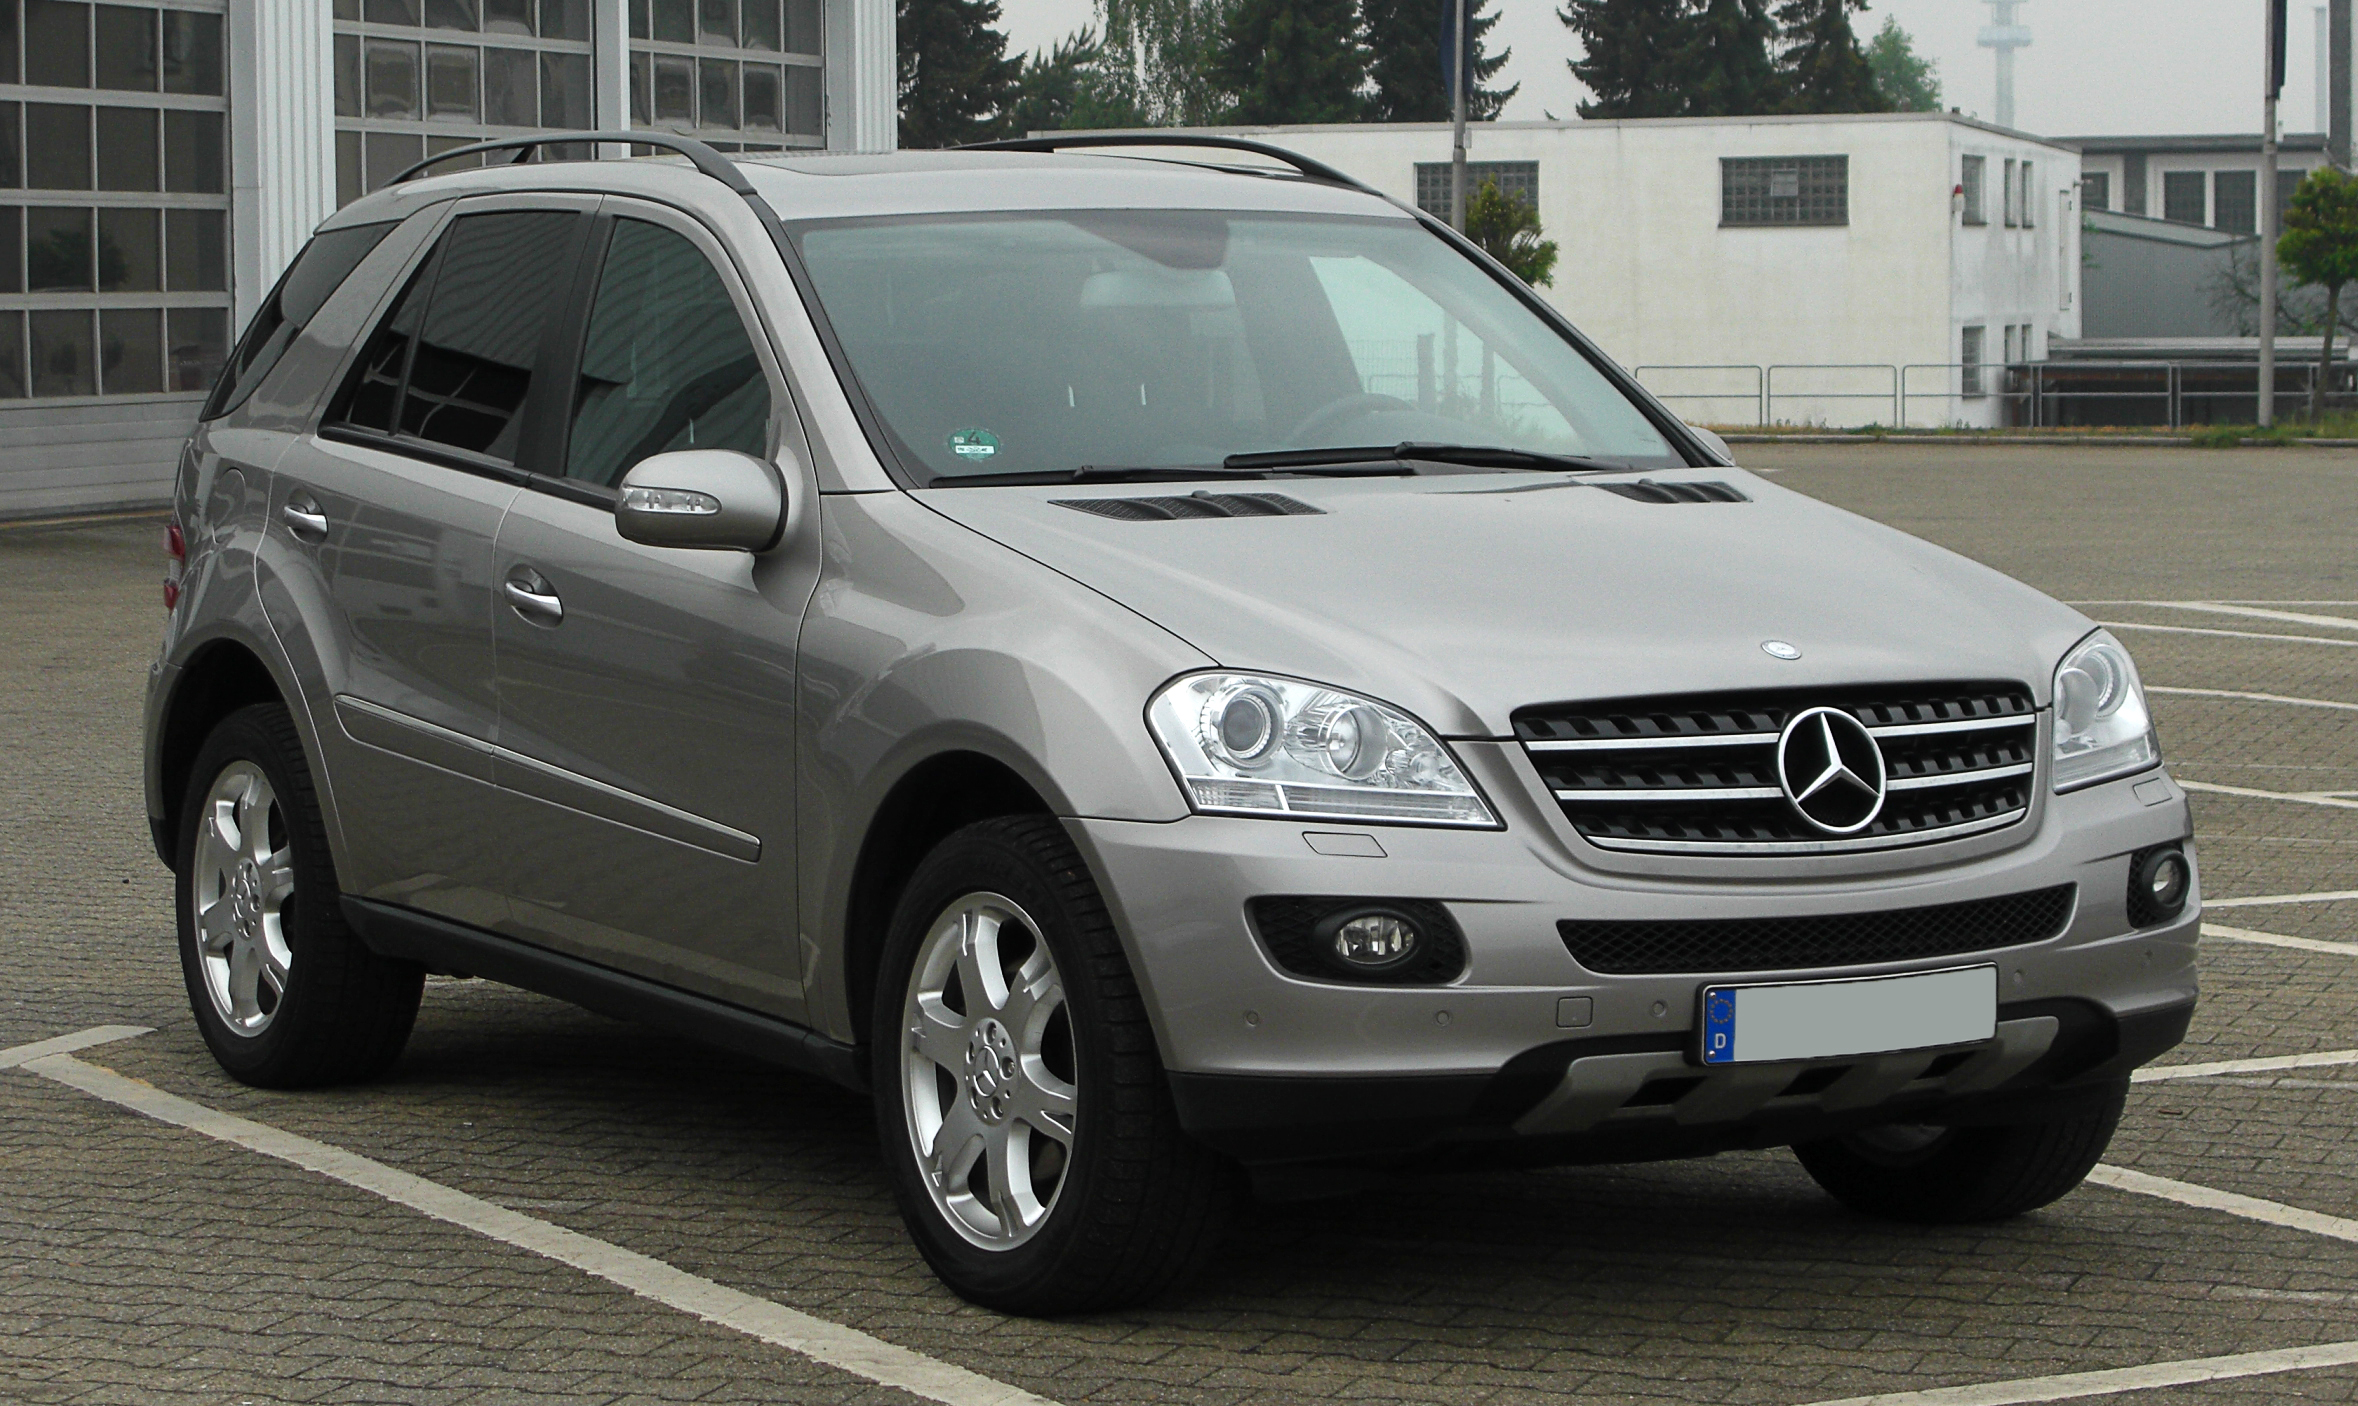 Mercedes-benz cdi photo - 5